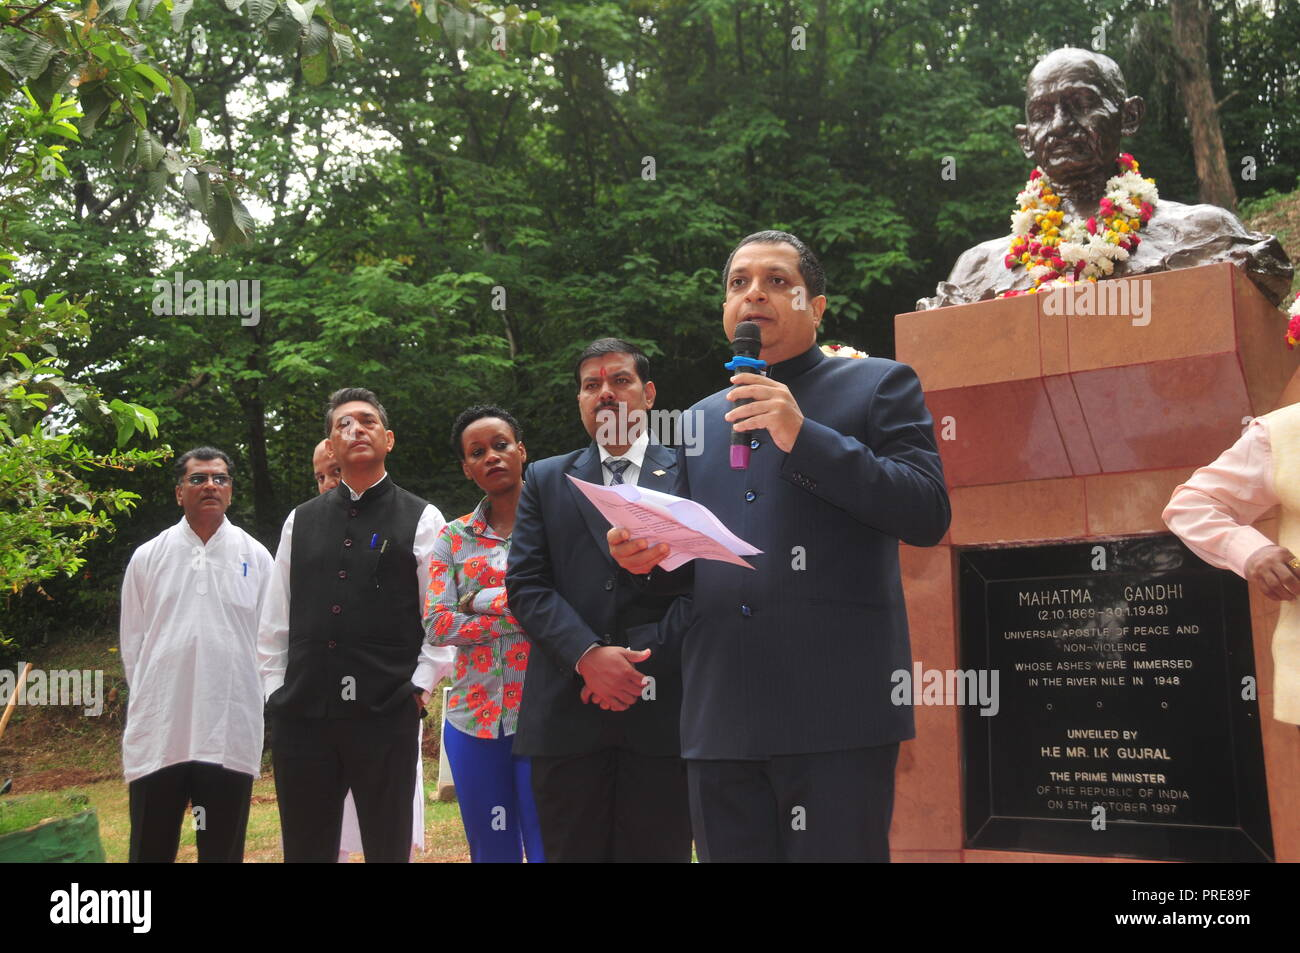 Jinja, Uganda. 2nd October, 2018: The High Commissioner of India in Uganda Ravi Shankar (right) addressing guests during celebrations to mark Mahatma Gandhi's 149th Birthday and the International Day of Non Violence at the Source of the Nile in Jinja. Members of the Indian Association Uganda, officials from Busoga Kingdom Tourism Ministry and Jinja residents joined other Indians all over the World in celebrating the 149th birthday of Mahatma Gandhi and the International Day of Non-Violence. In Uganda, they garlanded Mahatma Gandhi's Statue with flowers. Credit: Donald Kiirya/Alamy Live News. - Stock Image